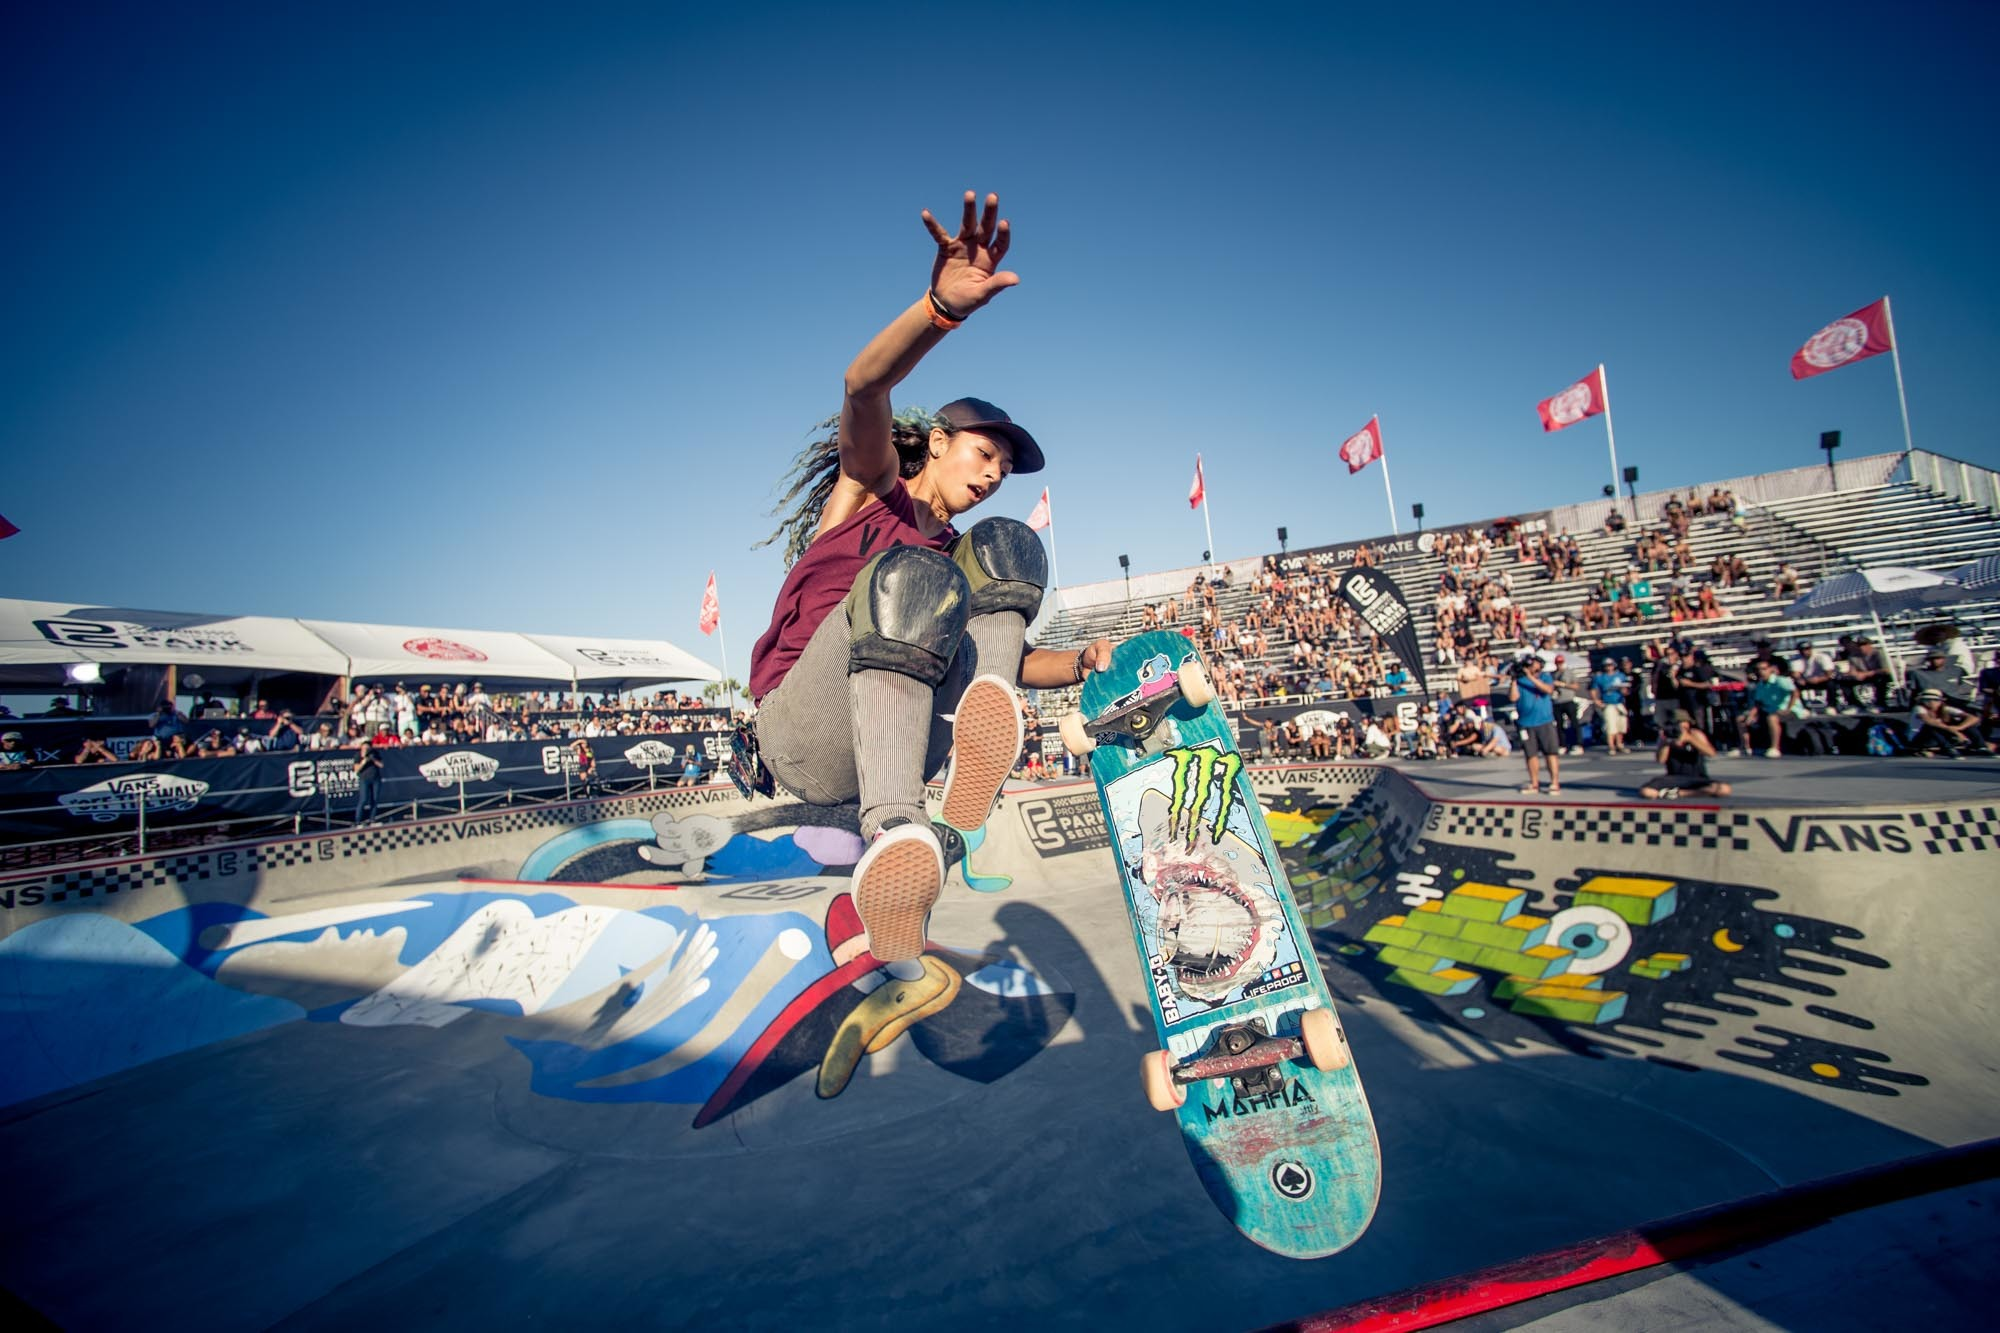 Female skateboarding might just be the coolest thing ever